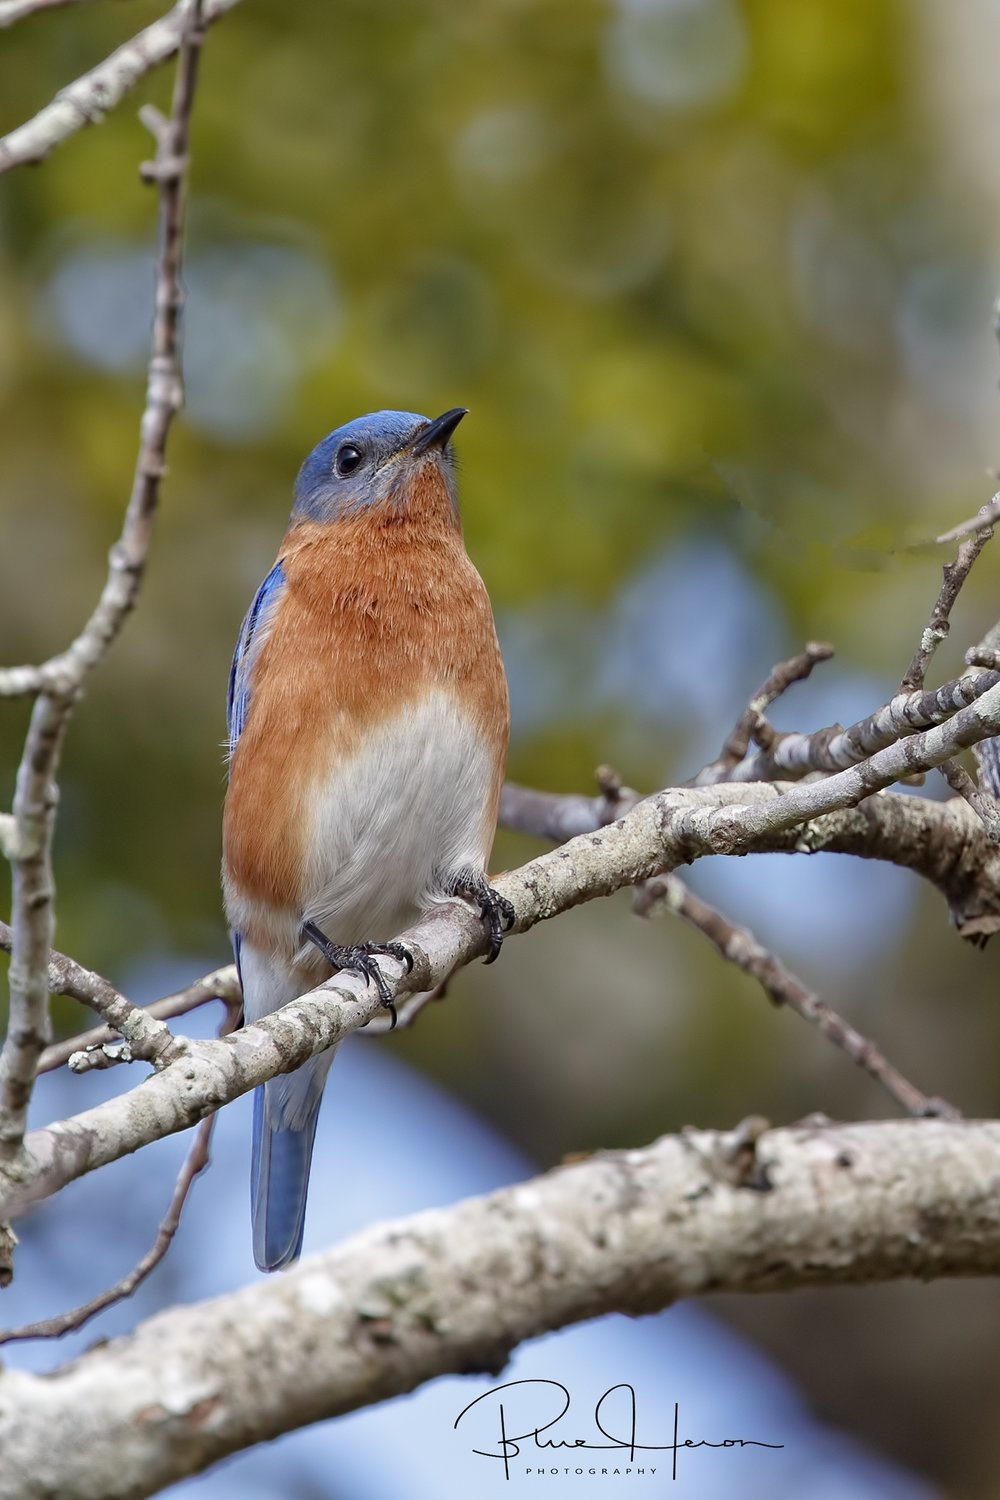 Mr Bluebird has been checking out the nesting box already..